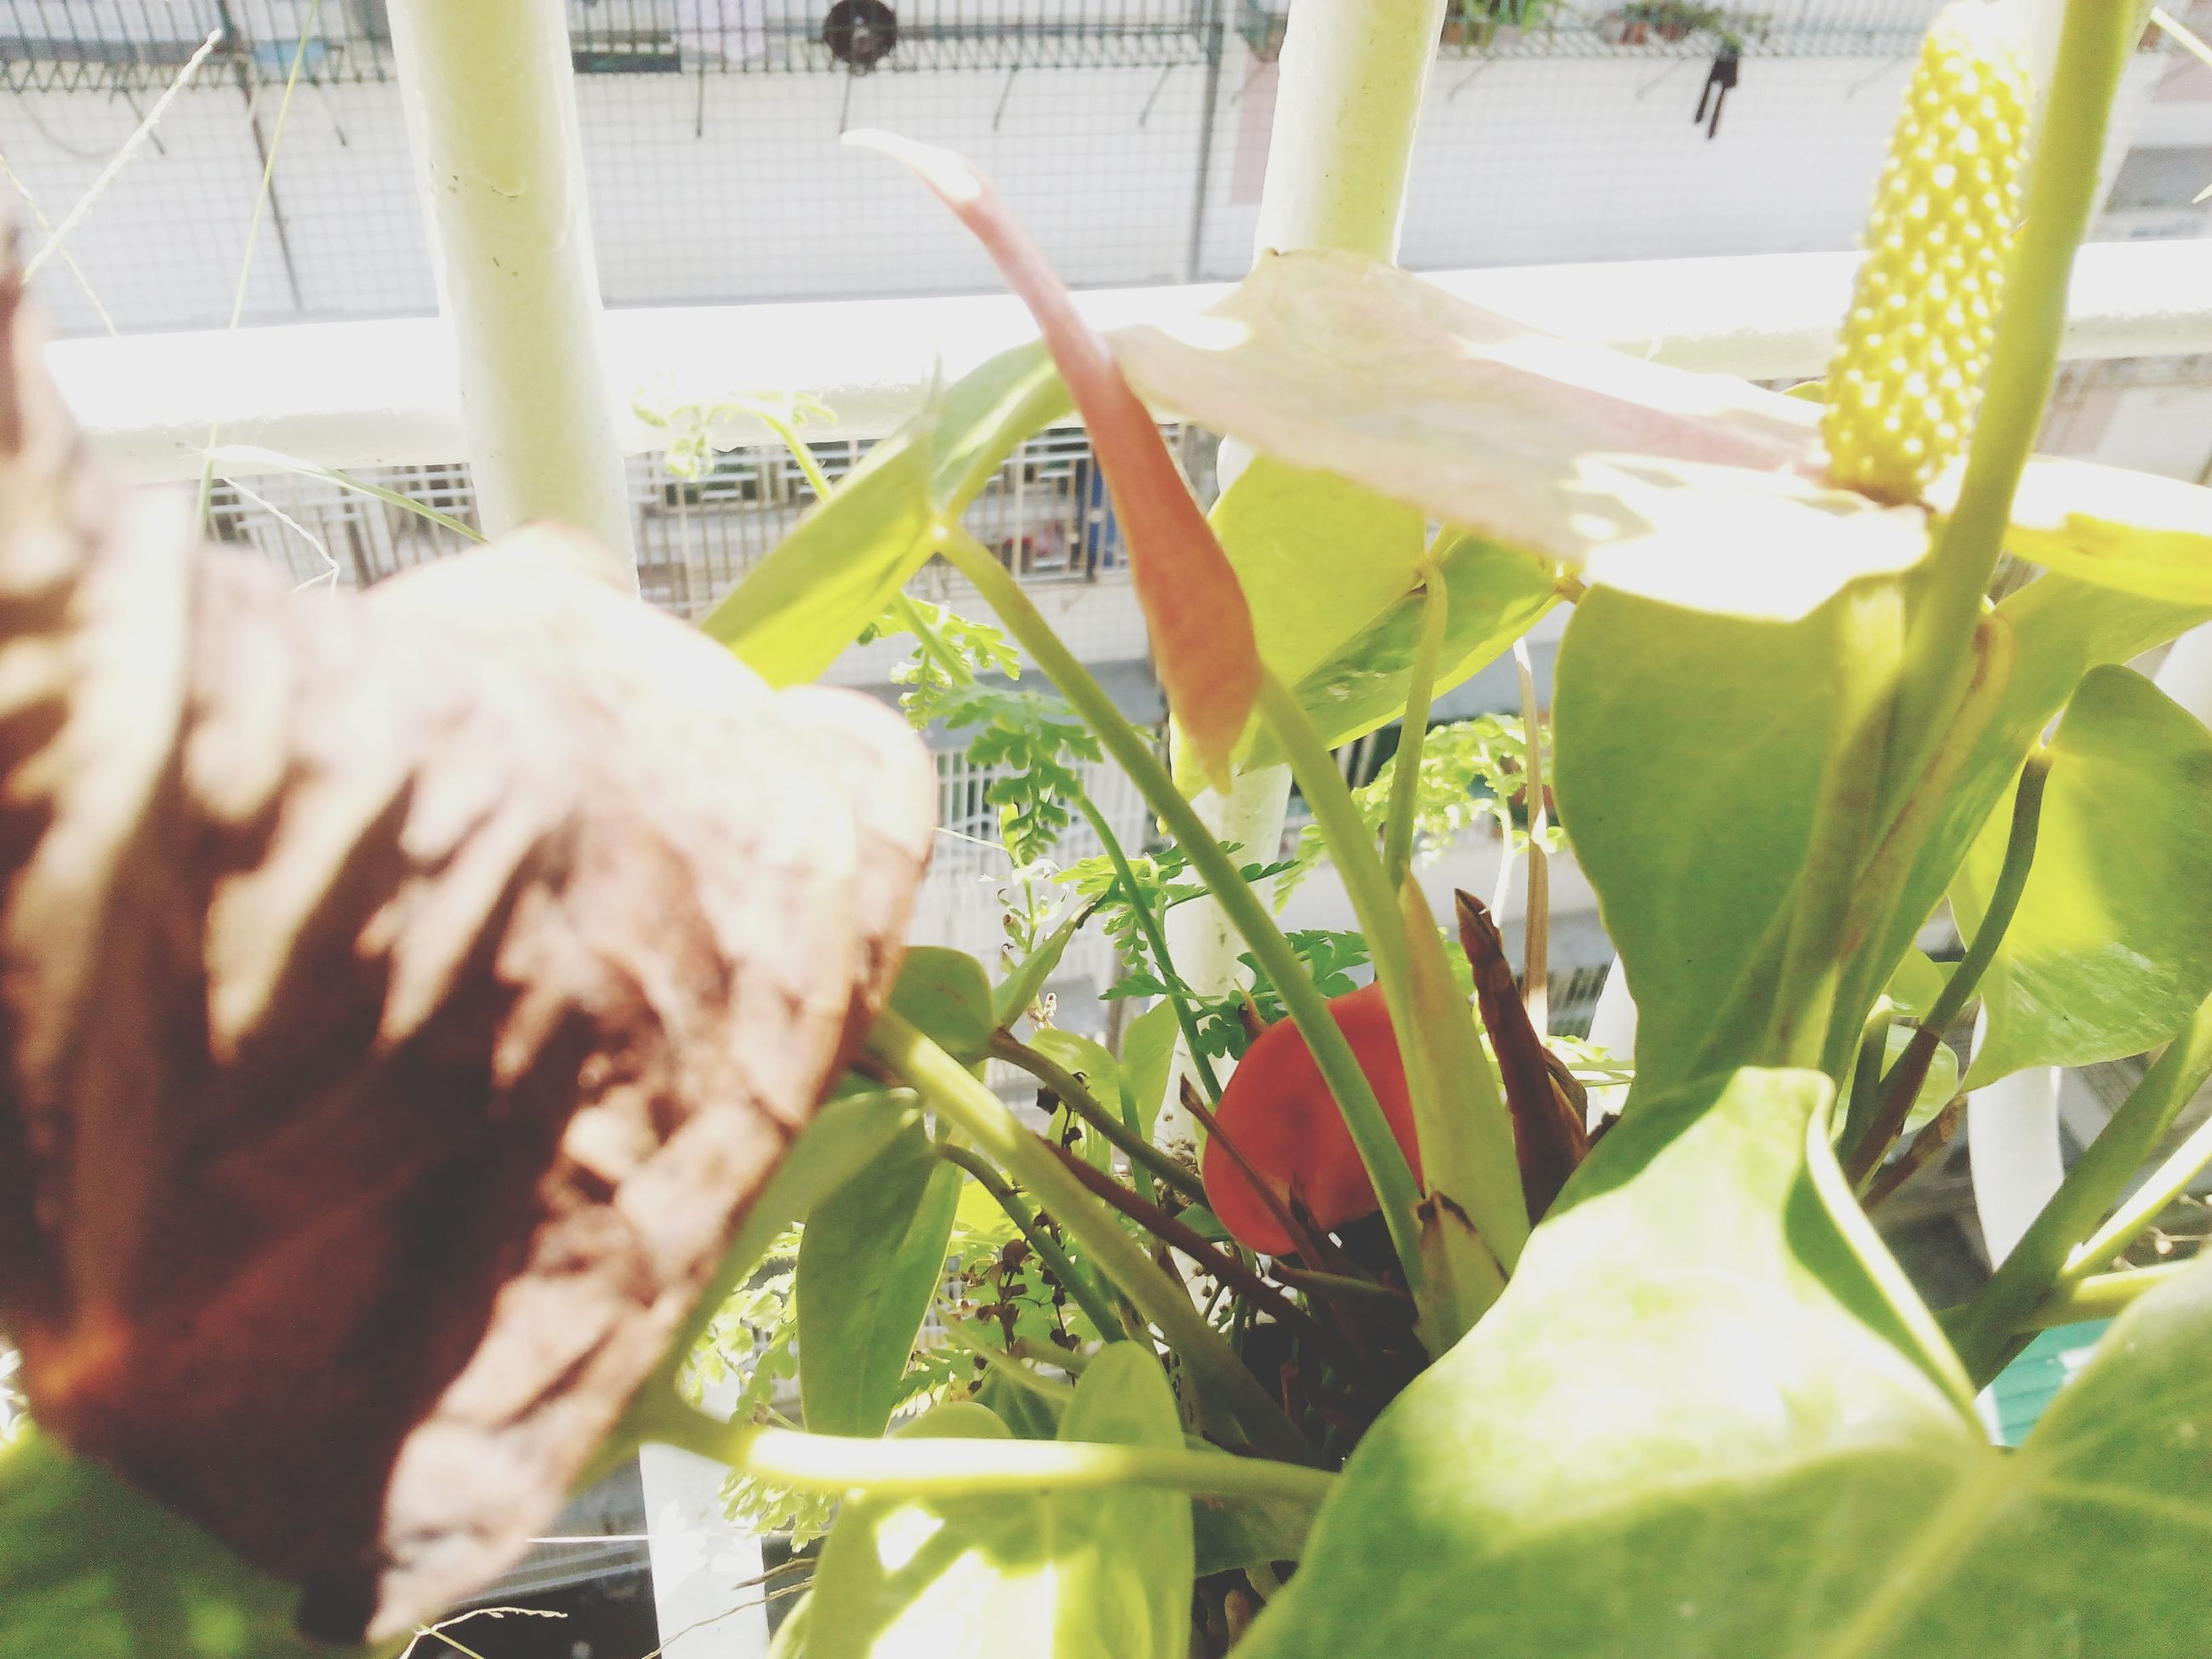 potted plant, leaf, plant, indoors, green color, animal themes, window, glass - material, growth, freshness, close-up, day, sunlight, transparent, one animal, one person, front or back yard, nature, table, focus on foreground